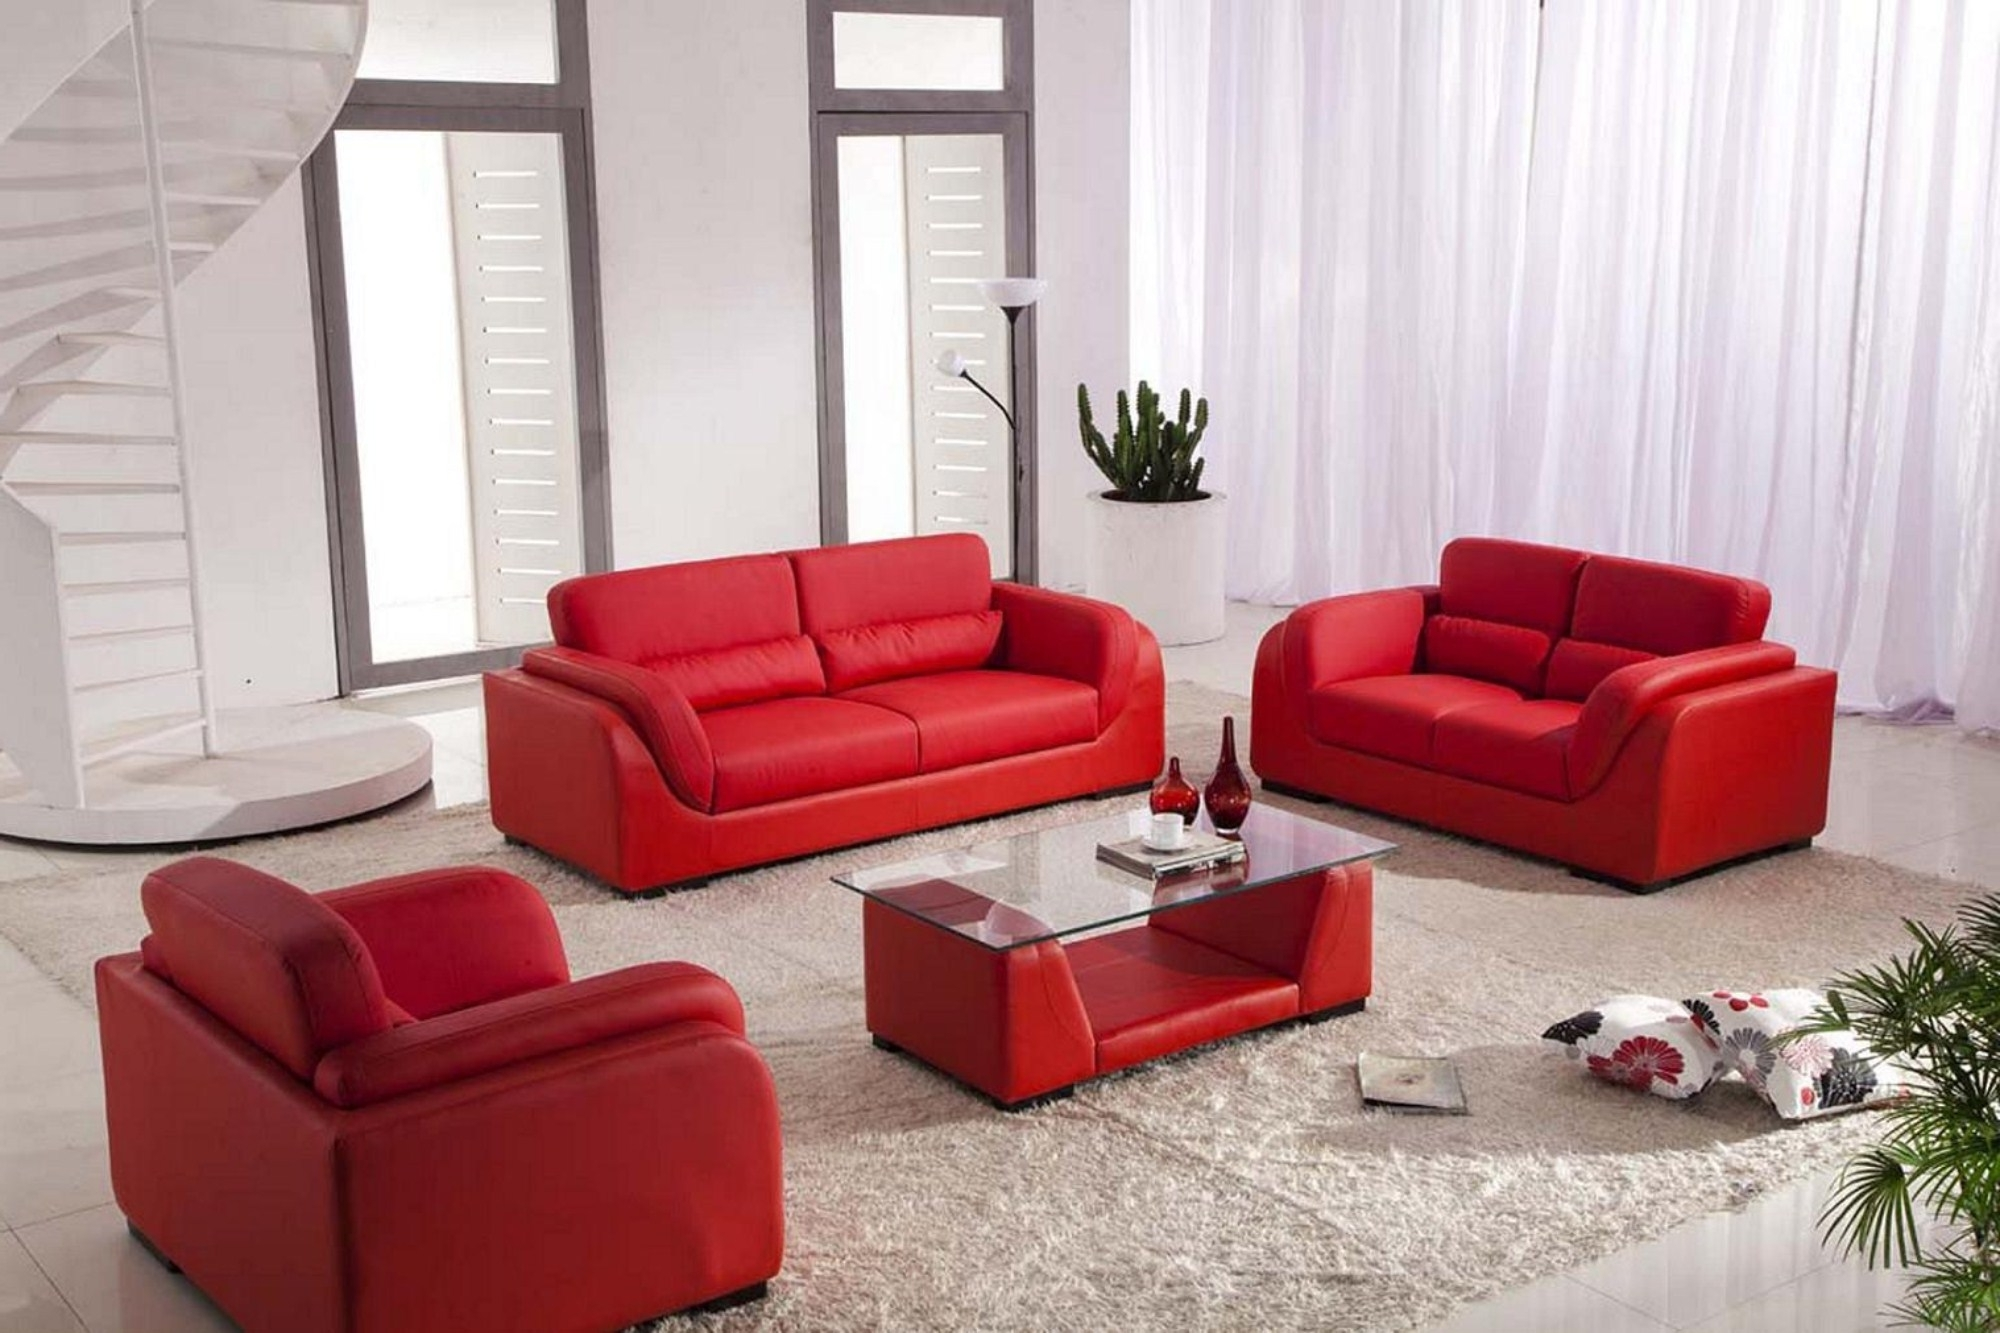 2019 Red Leather Couches For Living Room Pertaining To Living Room Attractive Ideas With Red Leather Sofa And Glass Table (View 2 of 20)